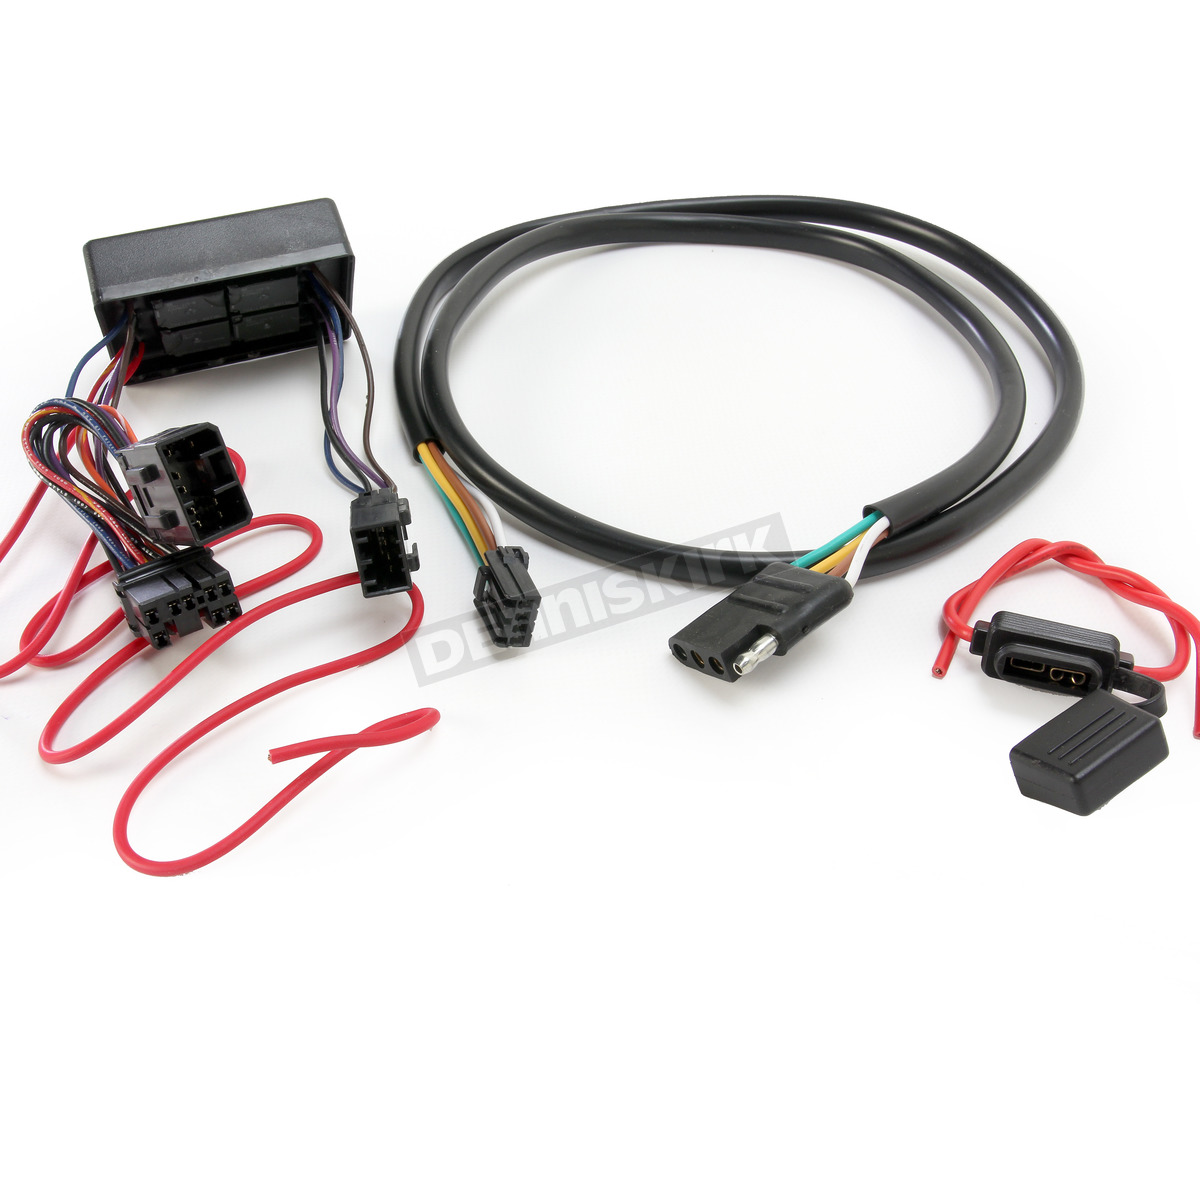 Khrome Werks Plug And Play Trailer Wiring Connector Kit W 4 Wire Harness Isolator